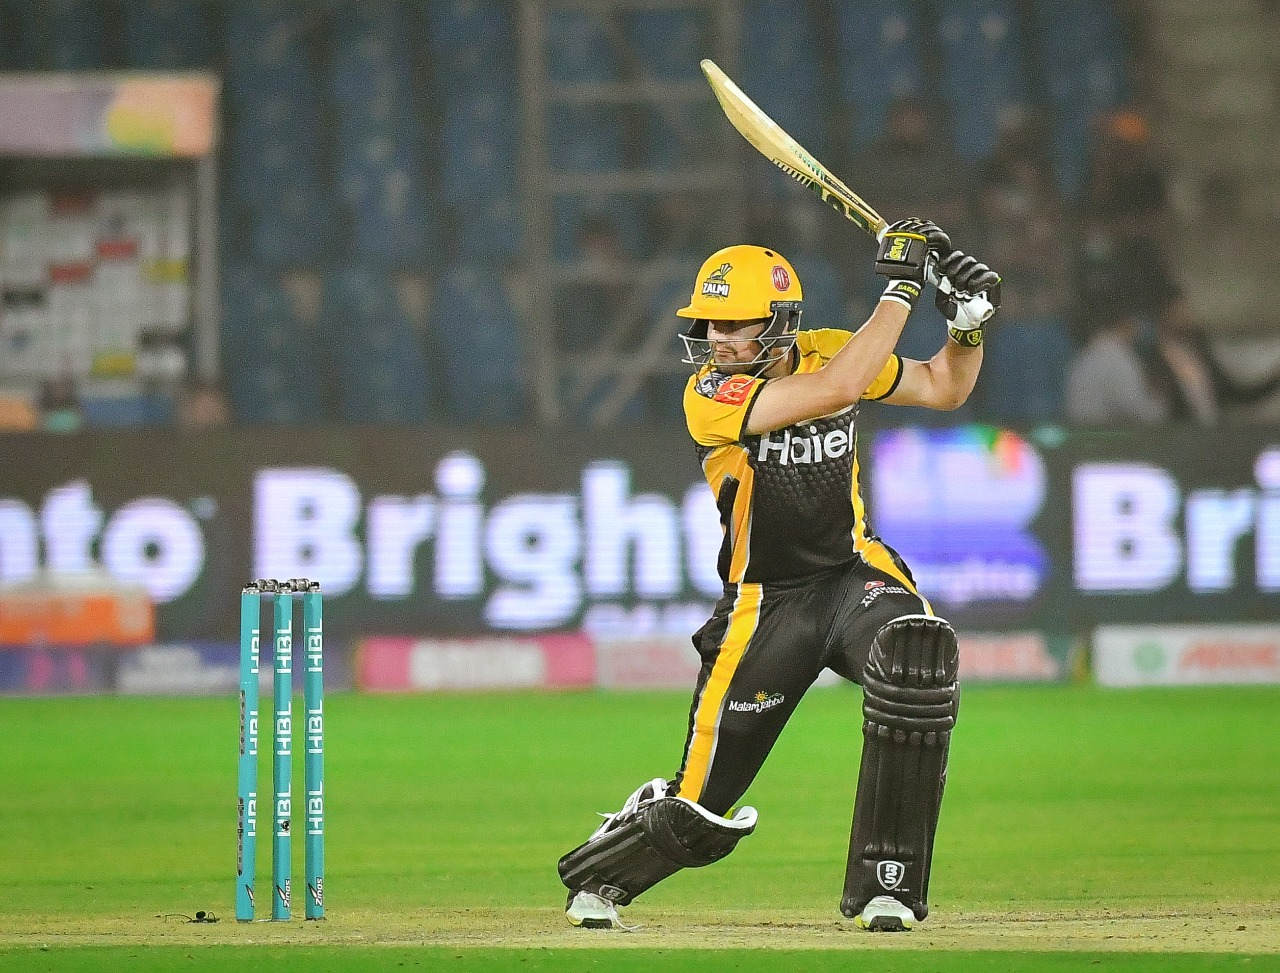 Peshawar Zalmi inflict a comprehensive 6-wicket defeat on Islamabad United